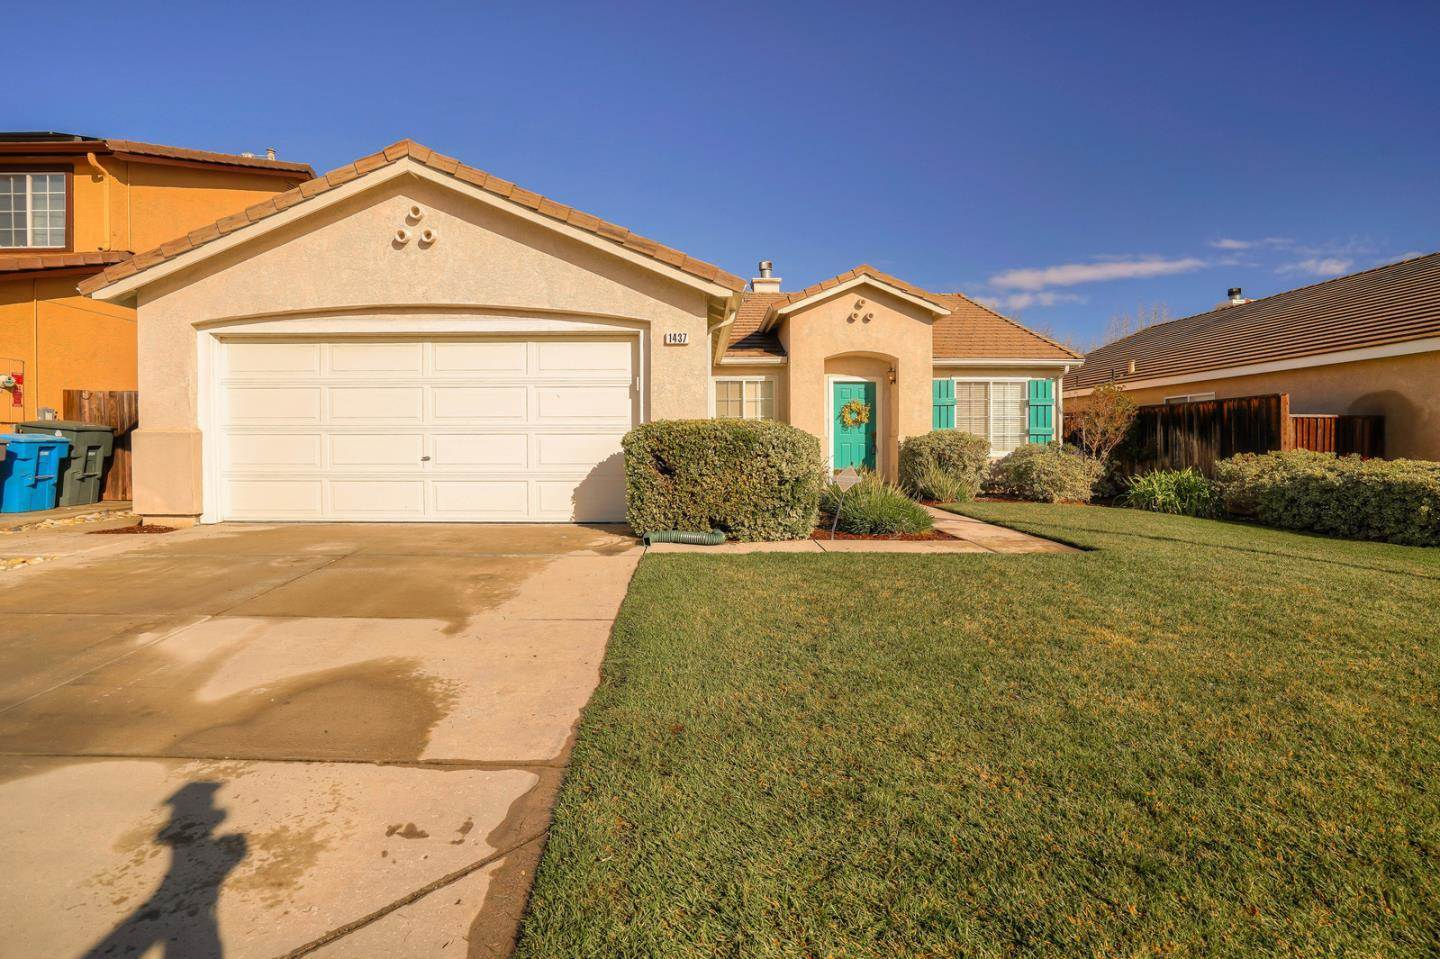 1437 Briarberry LN 95020 - One of Gilroy Homes for Sale